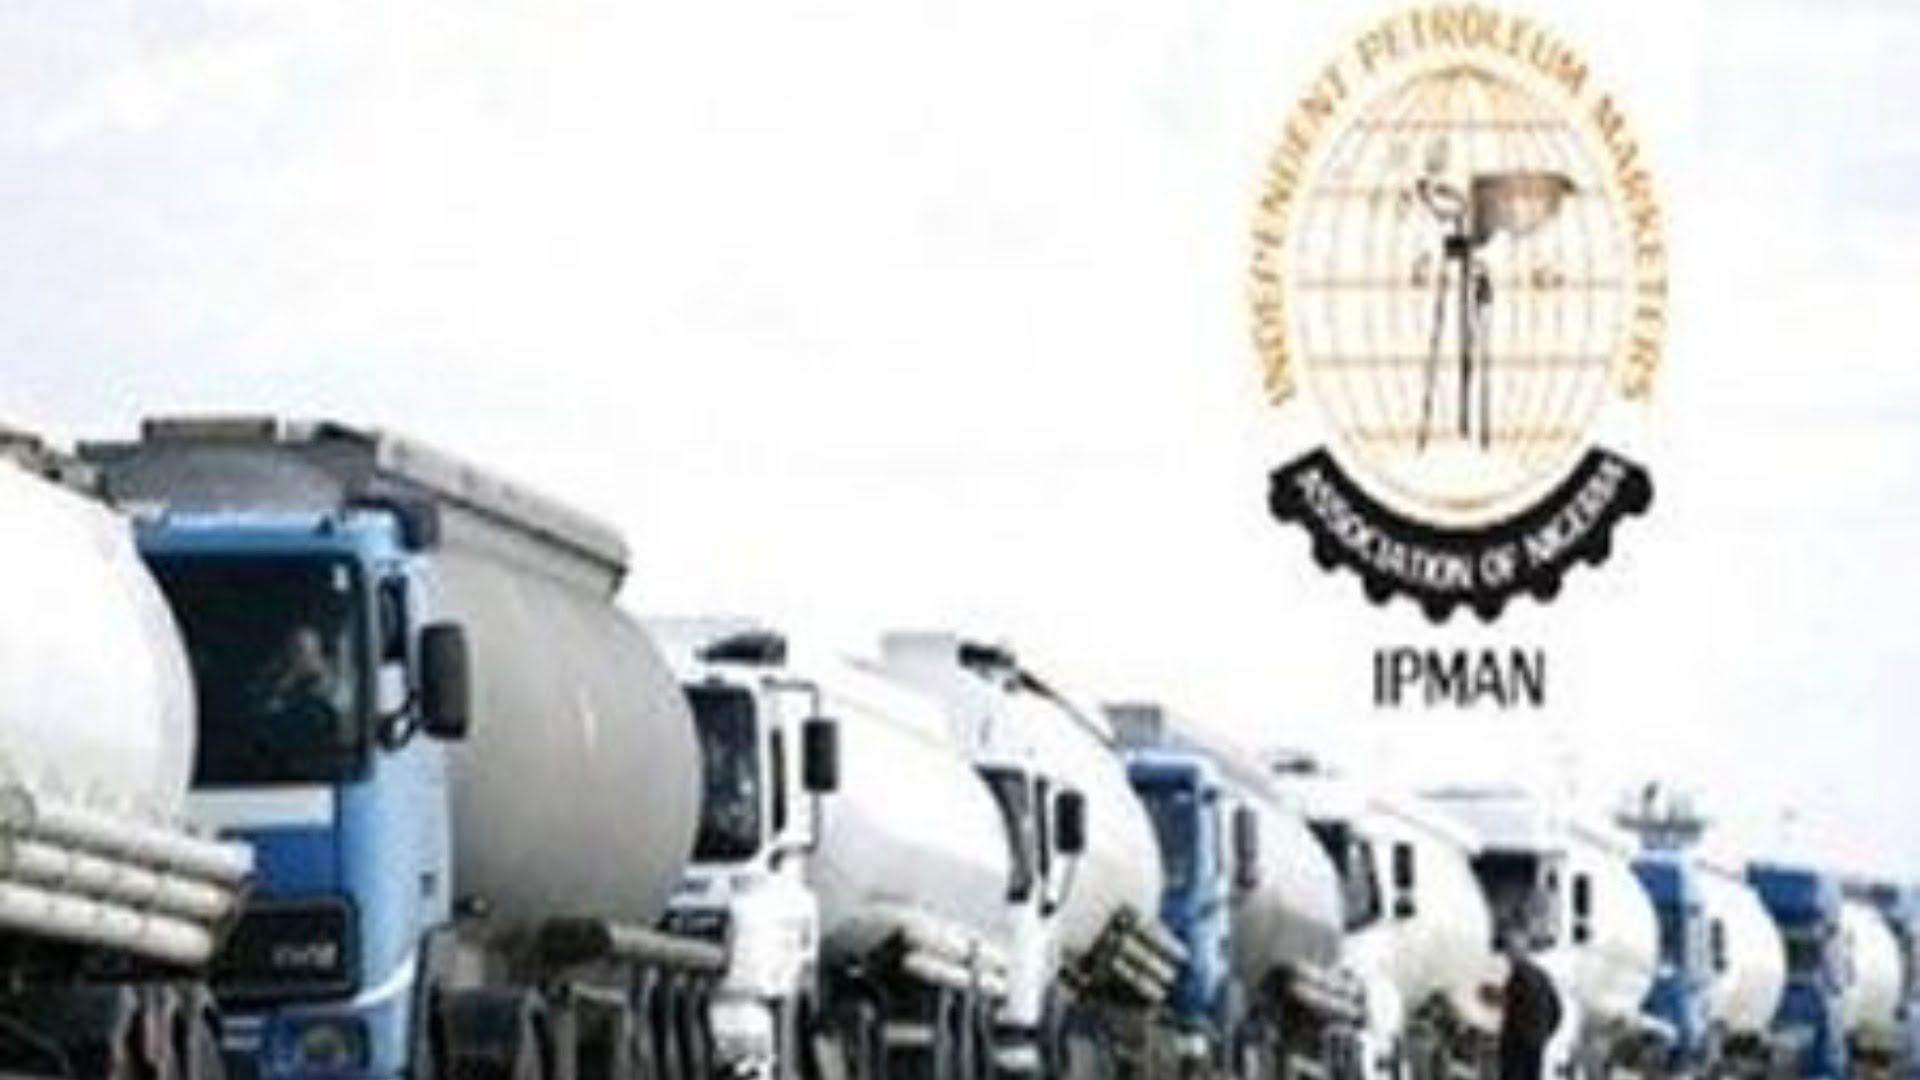 The Independent Petroleum Marketers Association of Nigeria (IPMAN) has directed its members to sell petrol at the old rate of N143 per litre, pending the new directive by the Petroleum Products Pricing Regulatory Agency (PPPRA). The National Public Relations Officer of IPMAN, Alhaji Suleiman Yakubu, said this during an interview with the News Agency of […]